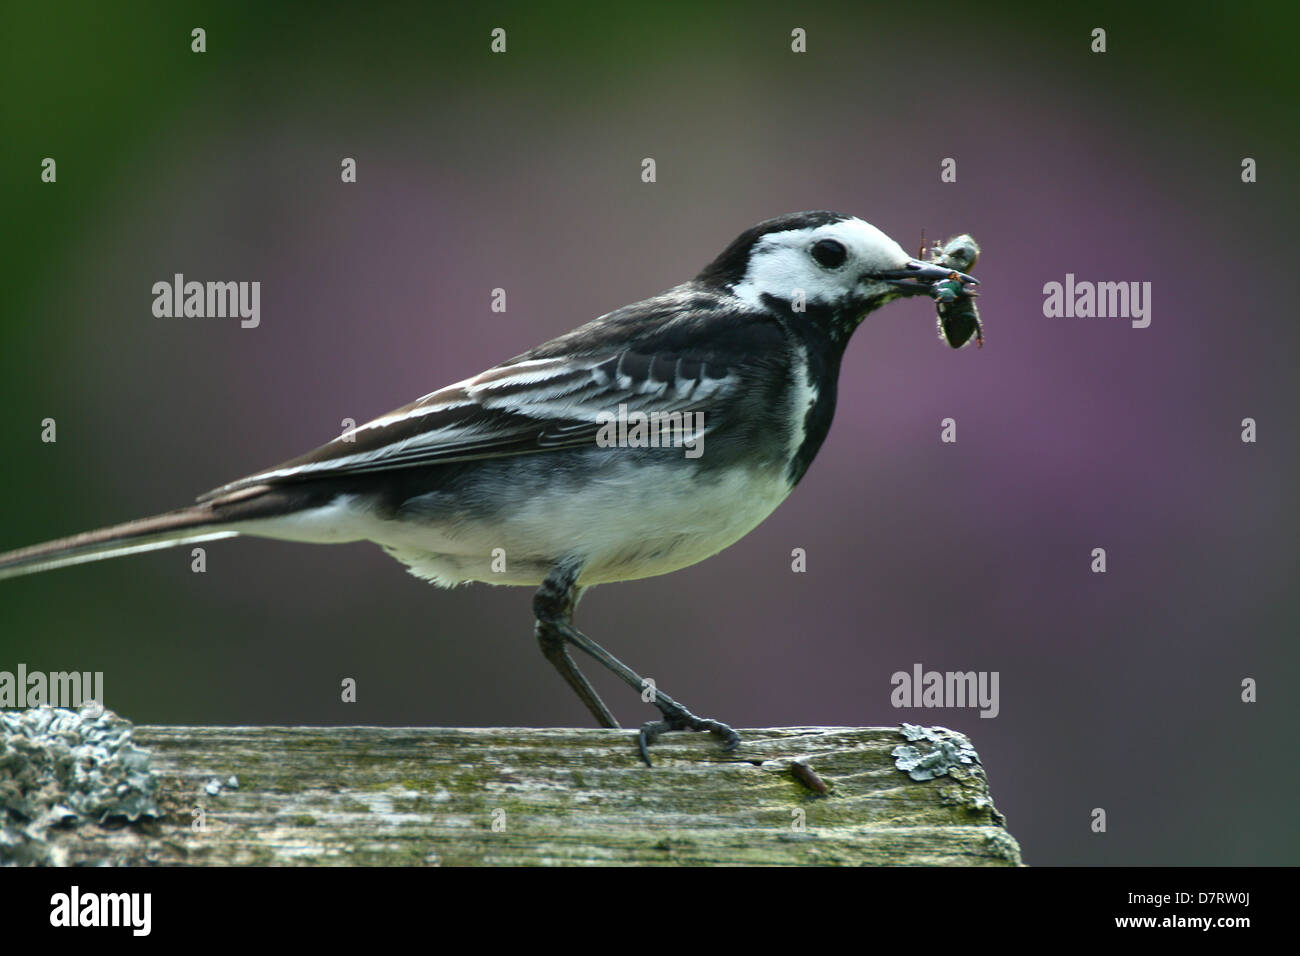 Pied Wagtail (Motacilla alba), perches with food in its beak. - Stock Image